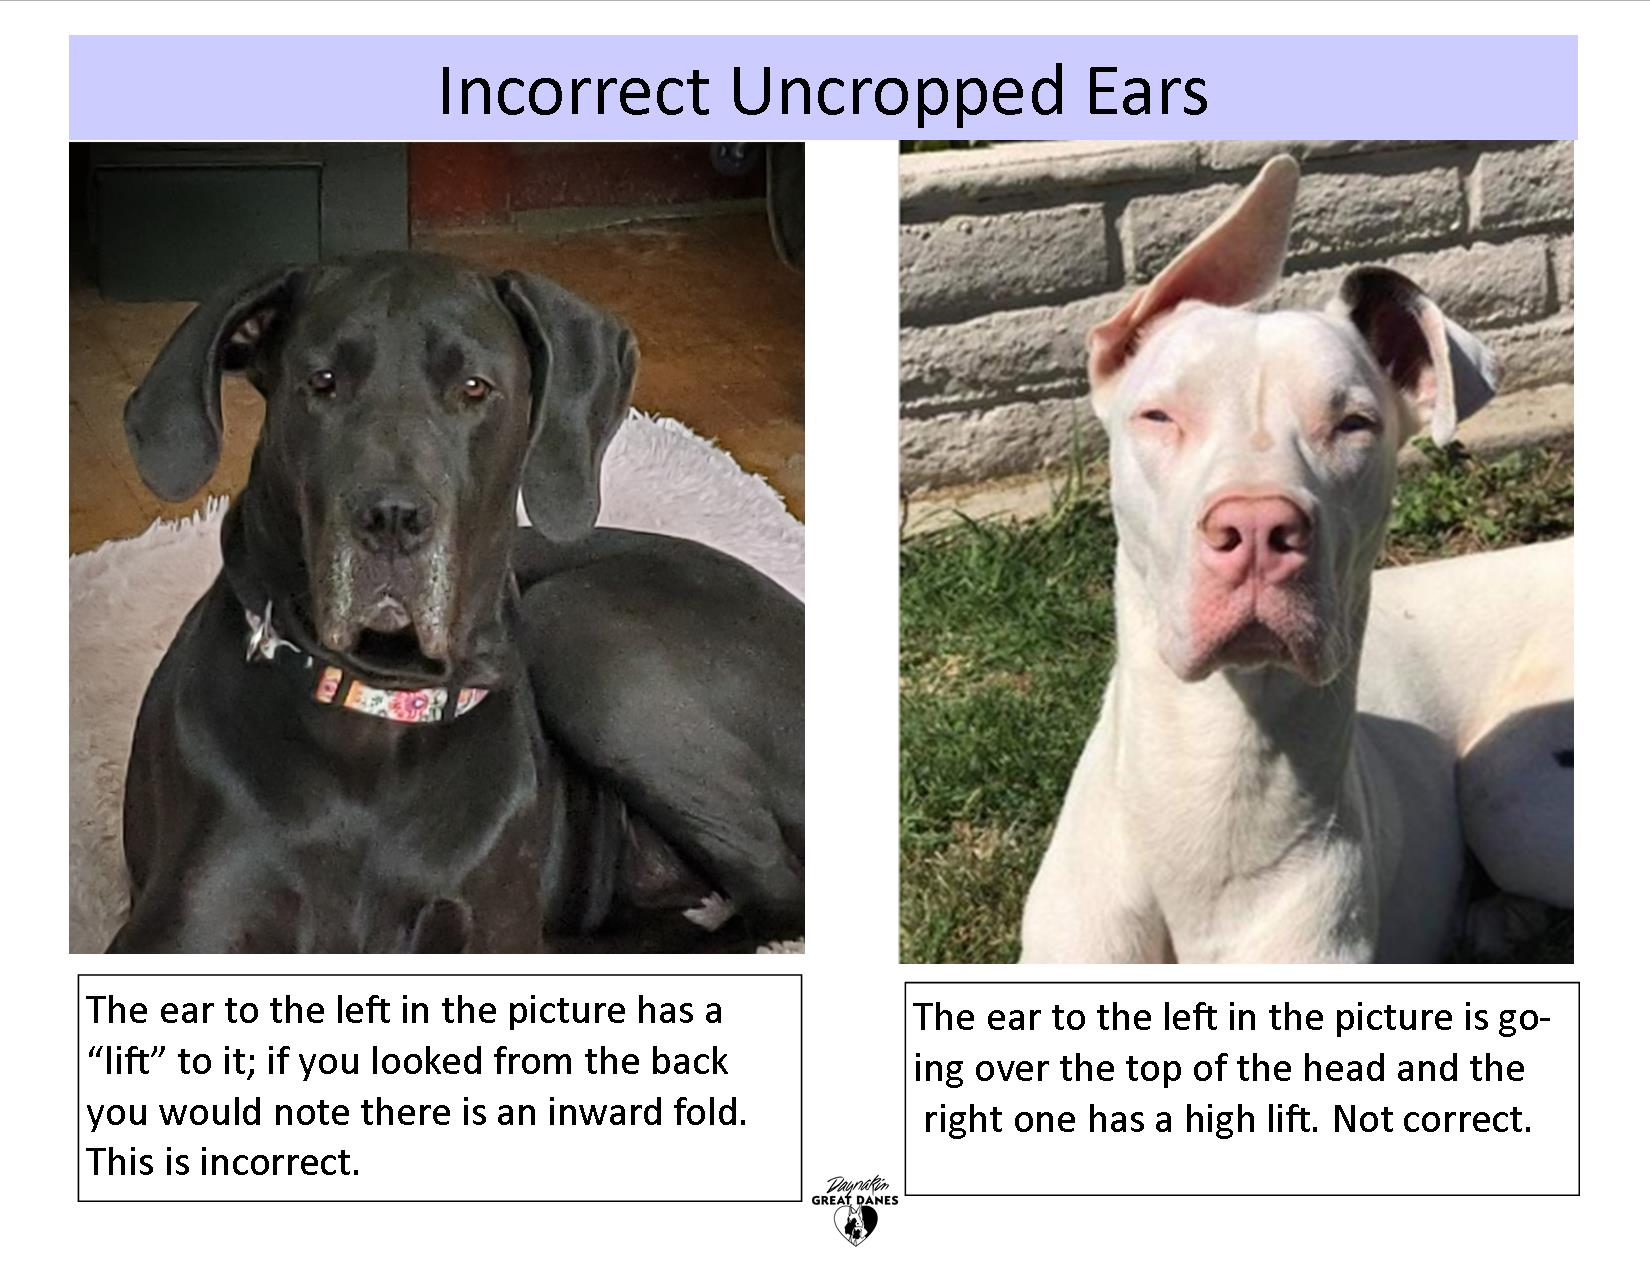 Incorrect untaped ears